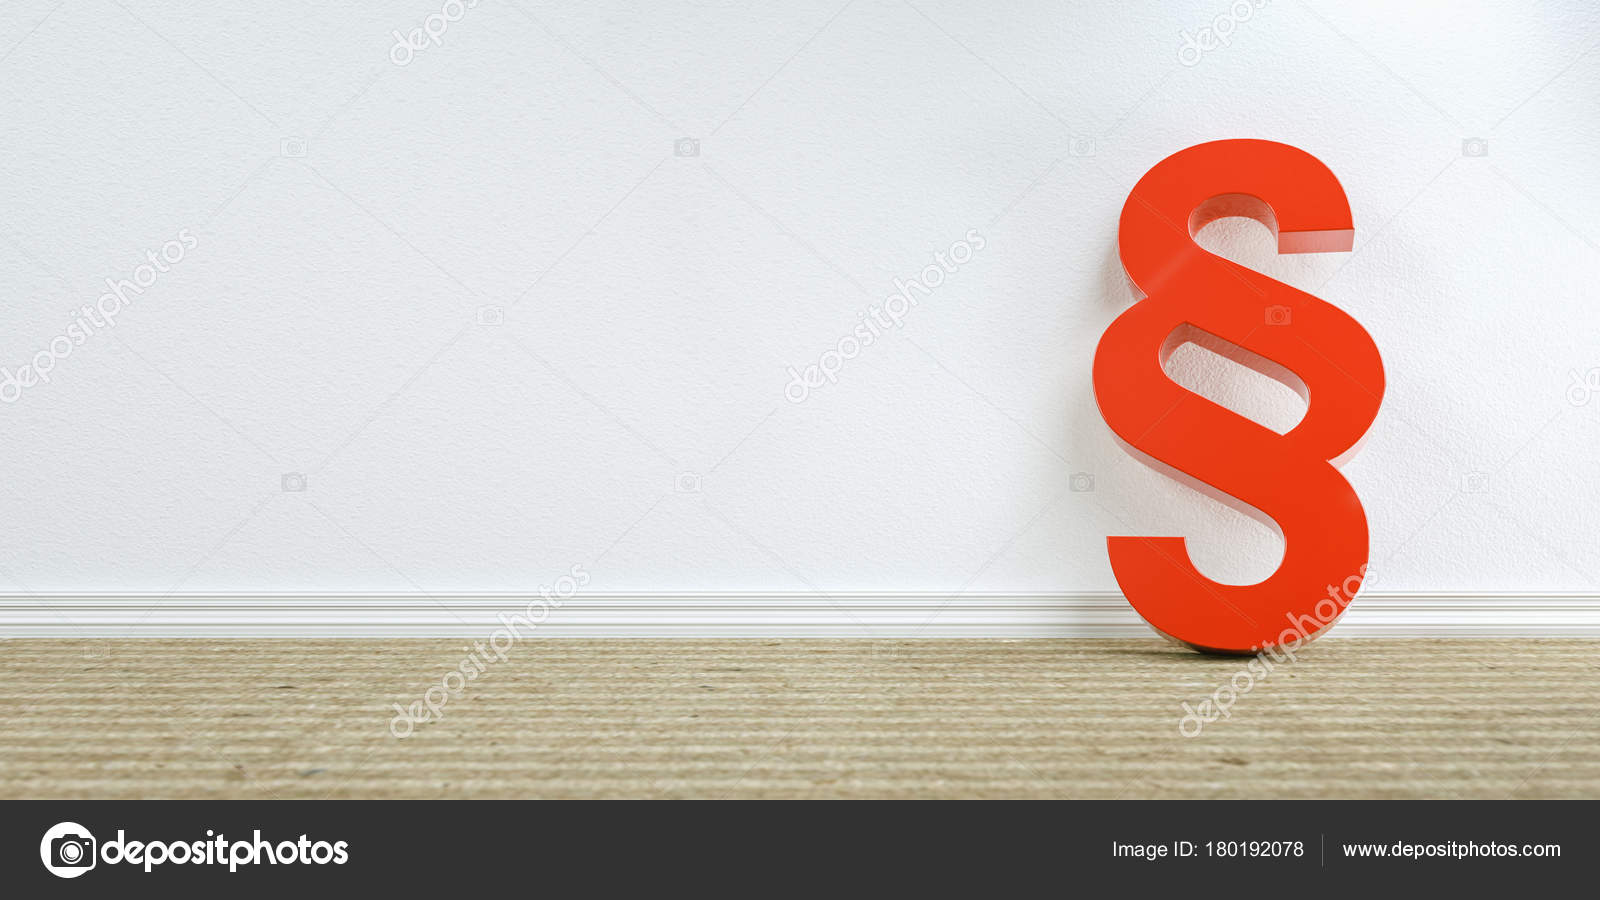 Symbol law justice paragraph section sign floor apartment stock symbol law justice paragraph section sign floor apartment stock photo buycottarizona Choice Image